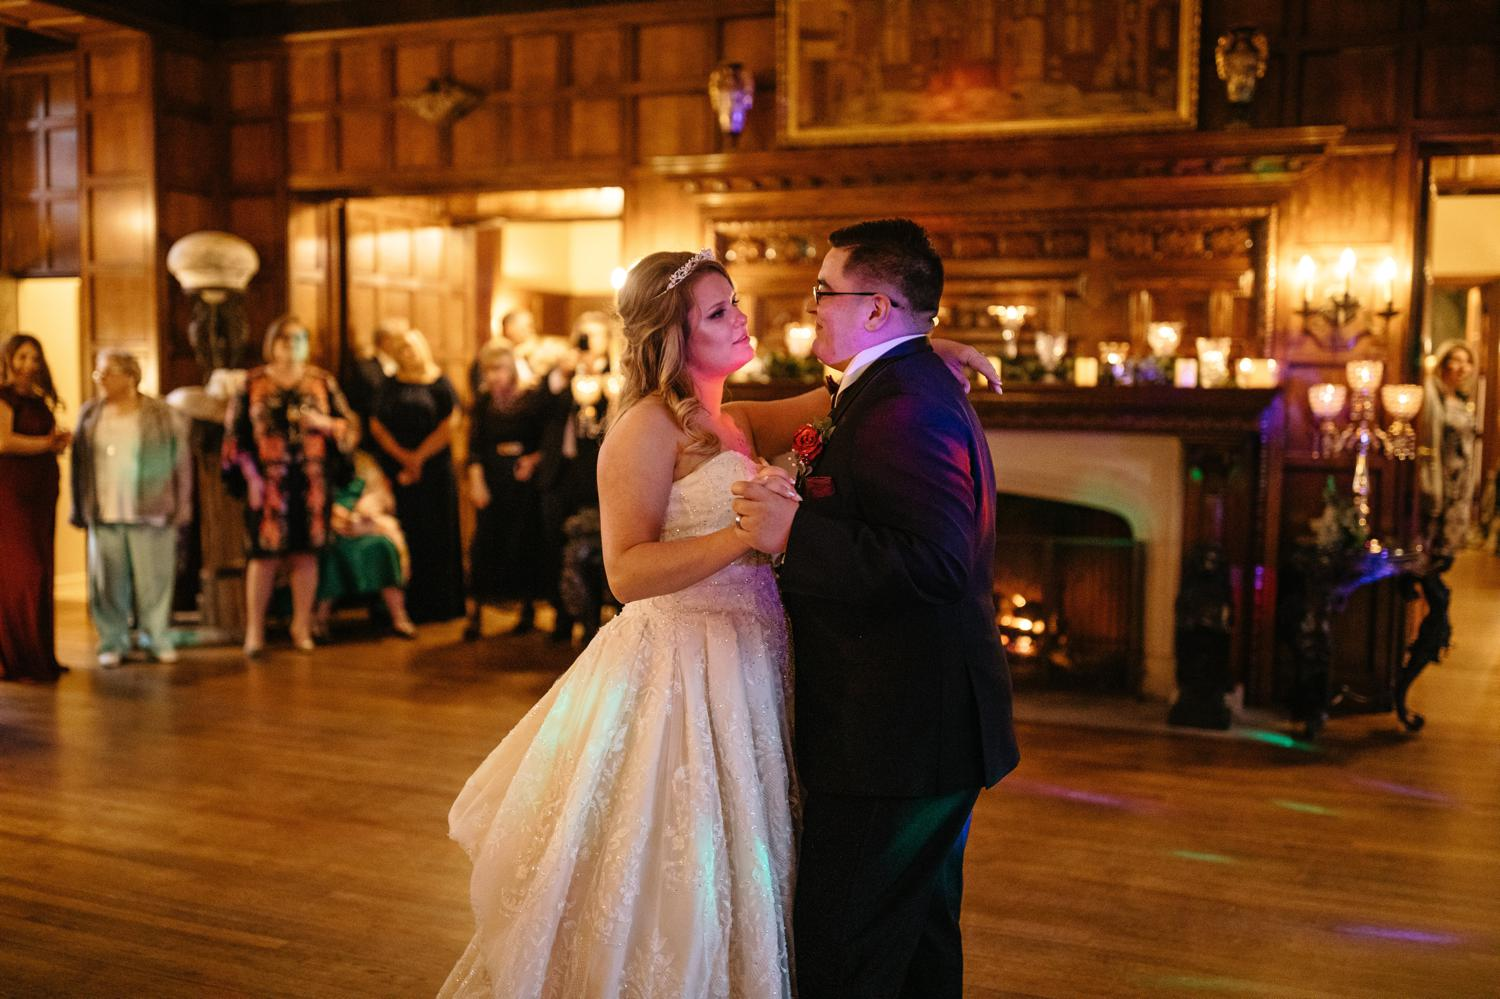 thornewood castle wedding dance floor